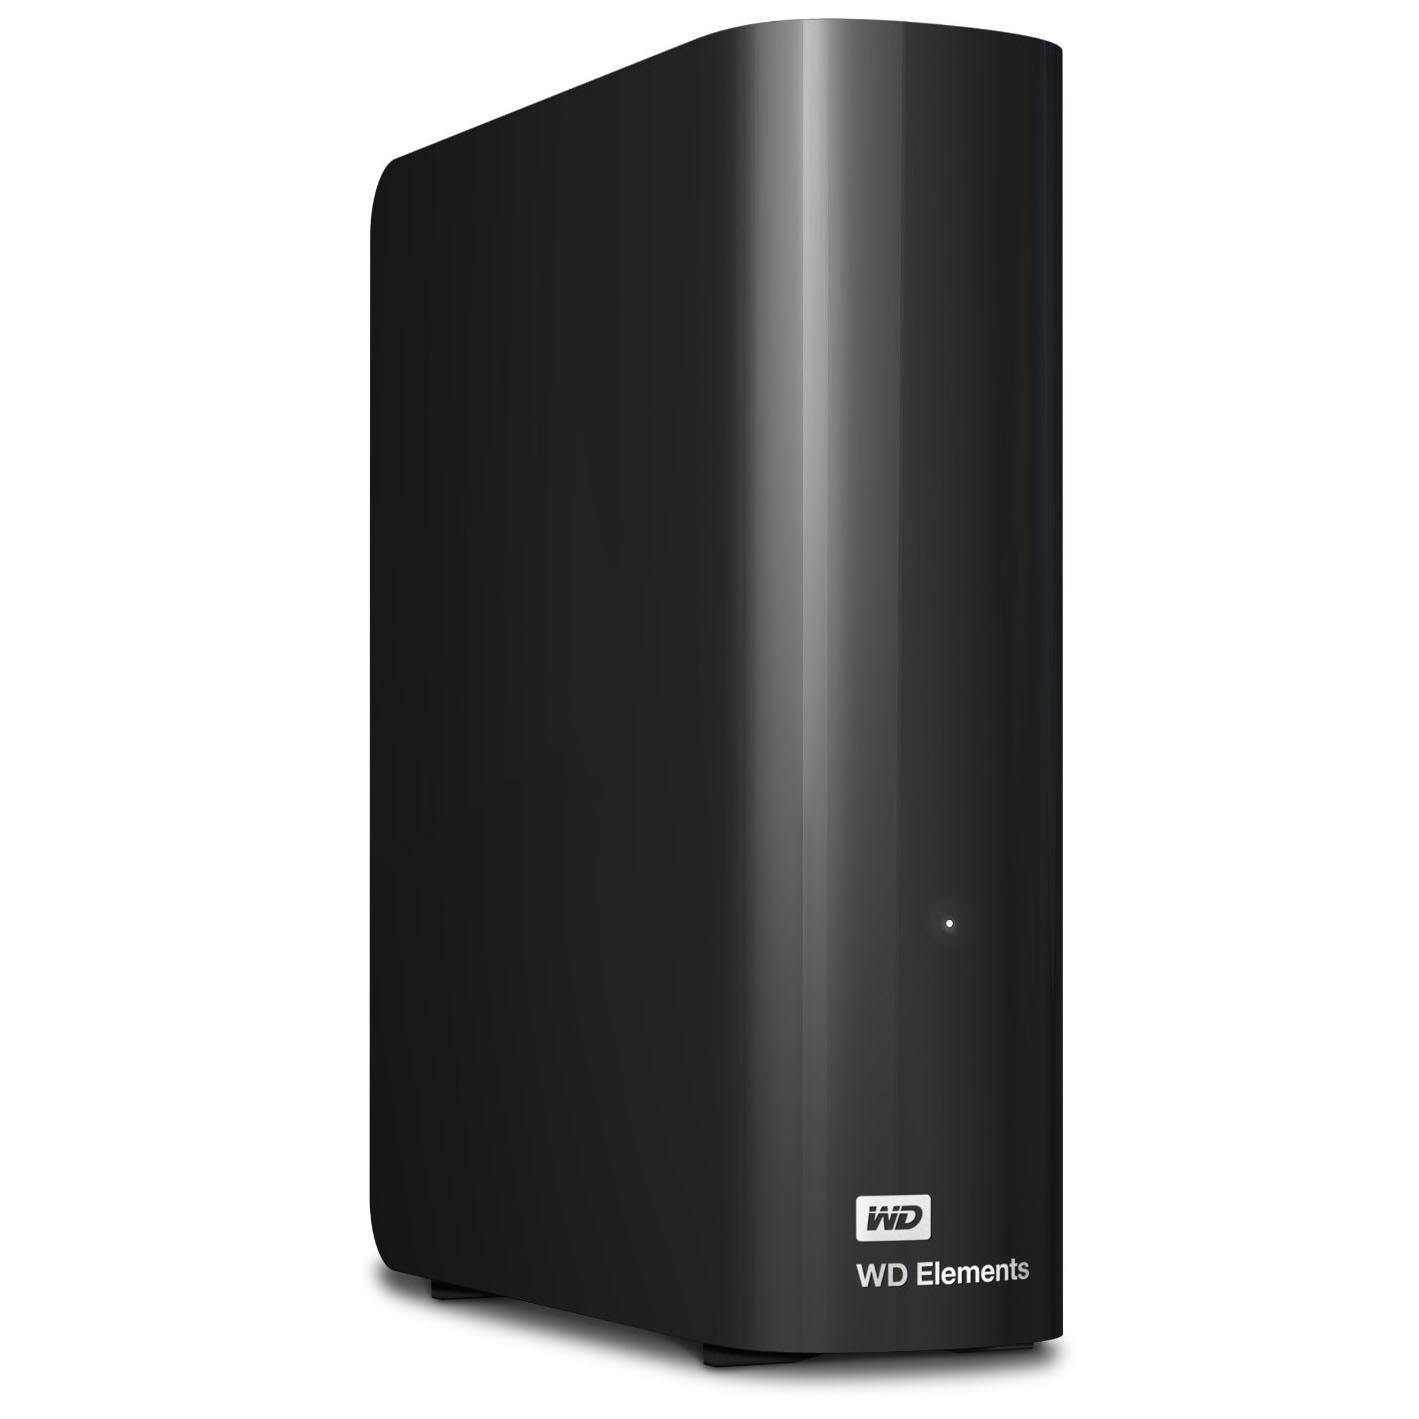 WD 4TB Easystore External USB 3.0 Hard Drive for $89.99 Shipped